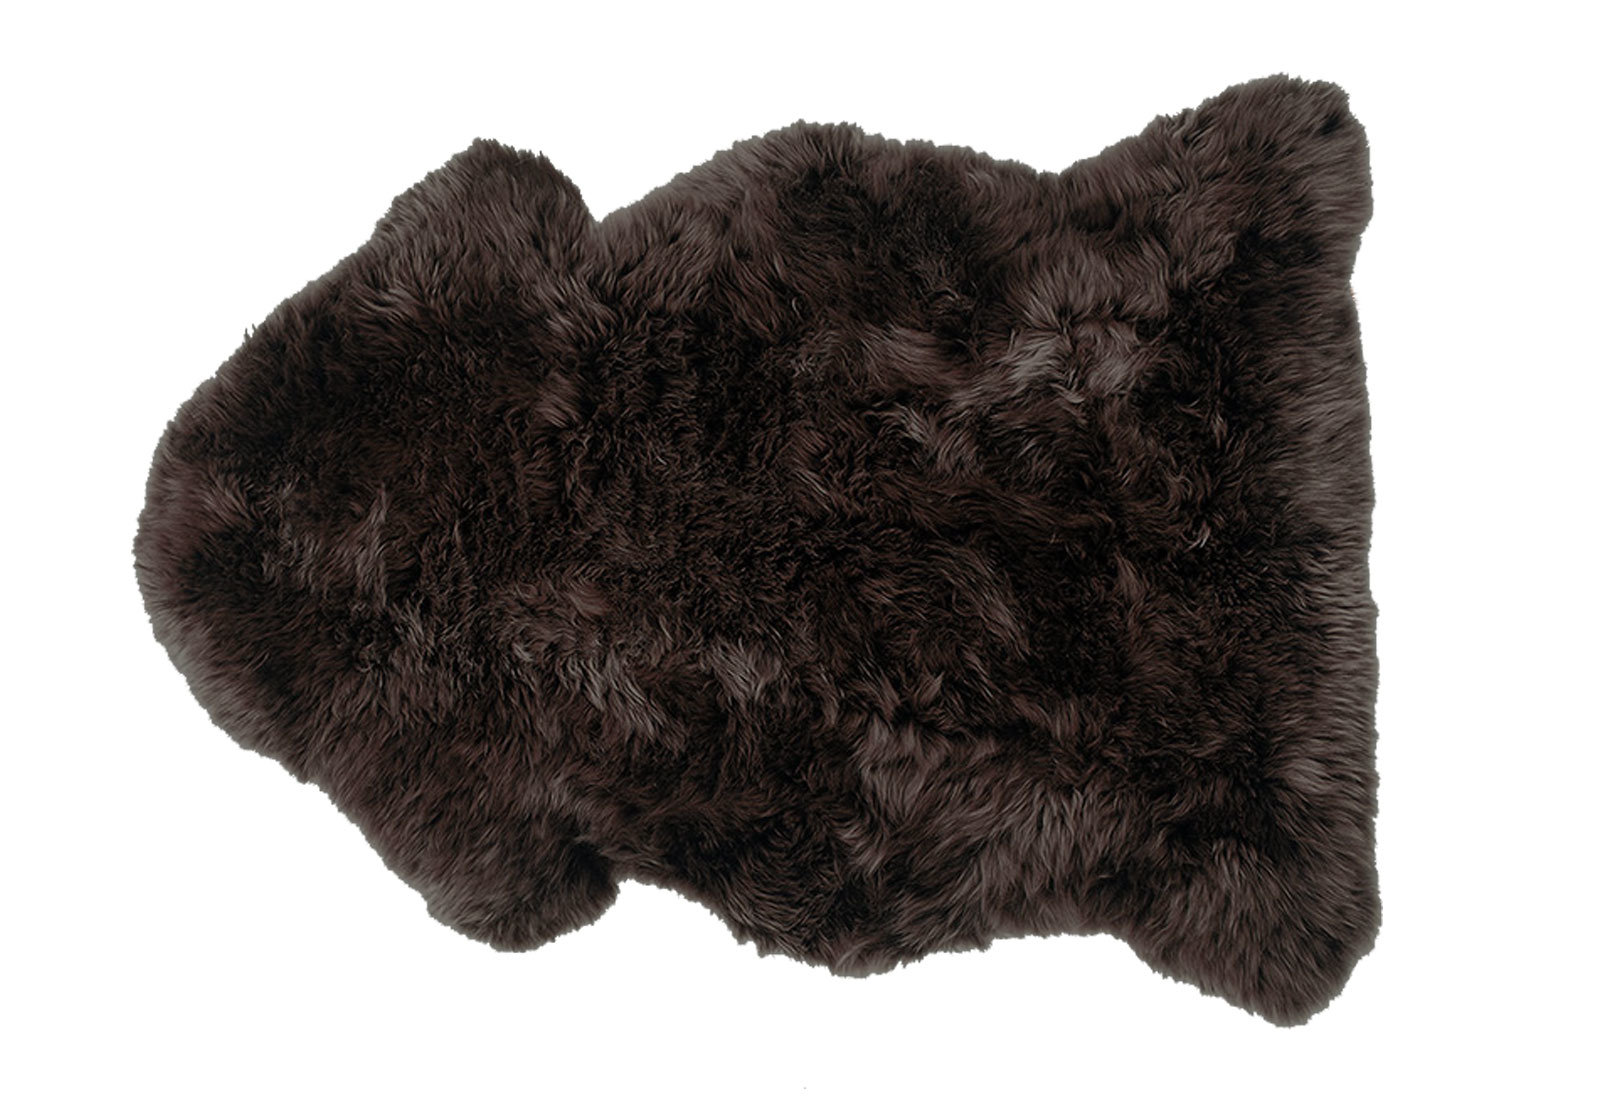 Walnut Dark Brown with Taupe Tips Sheepskin Fur Rug